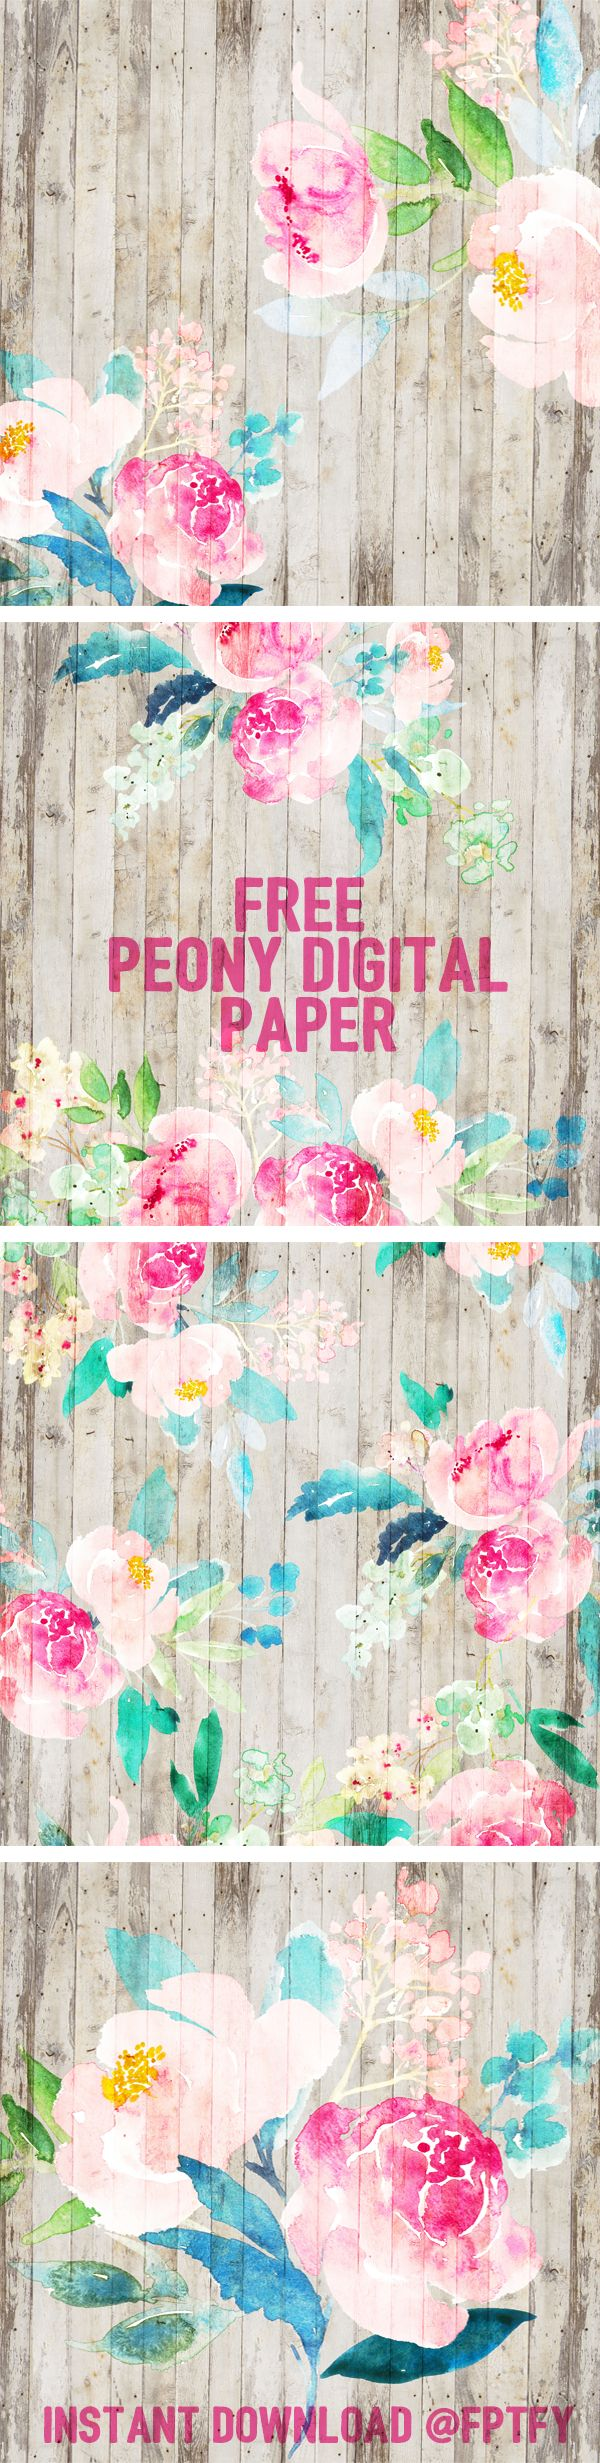 Digital scrapbooking kits free all about scrapbooking ideas - Free Peony Digital Scrapbooking Paper